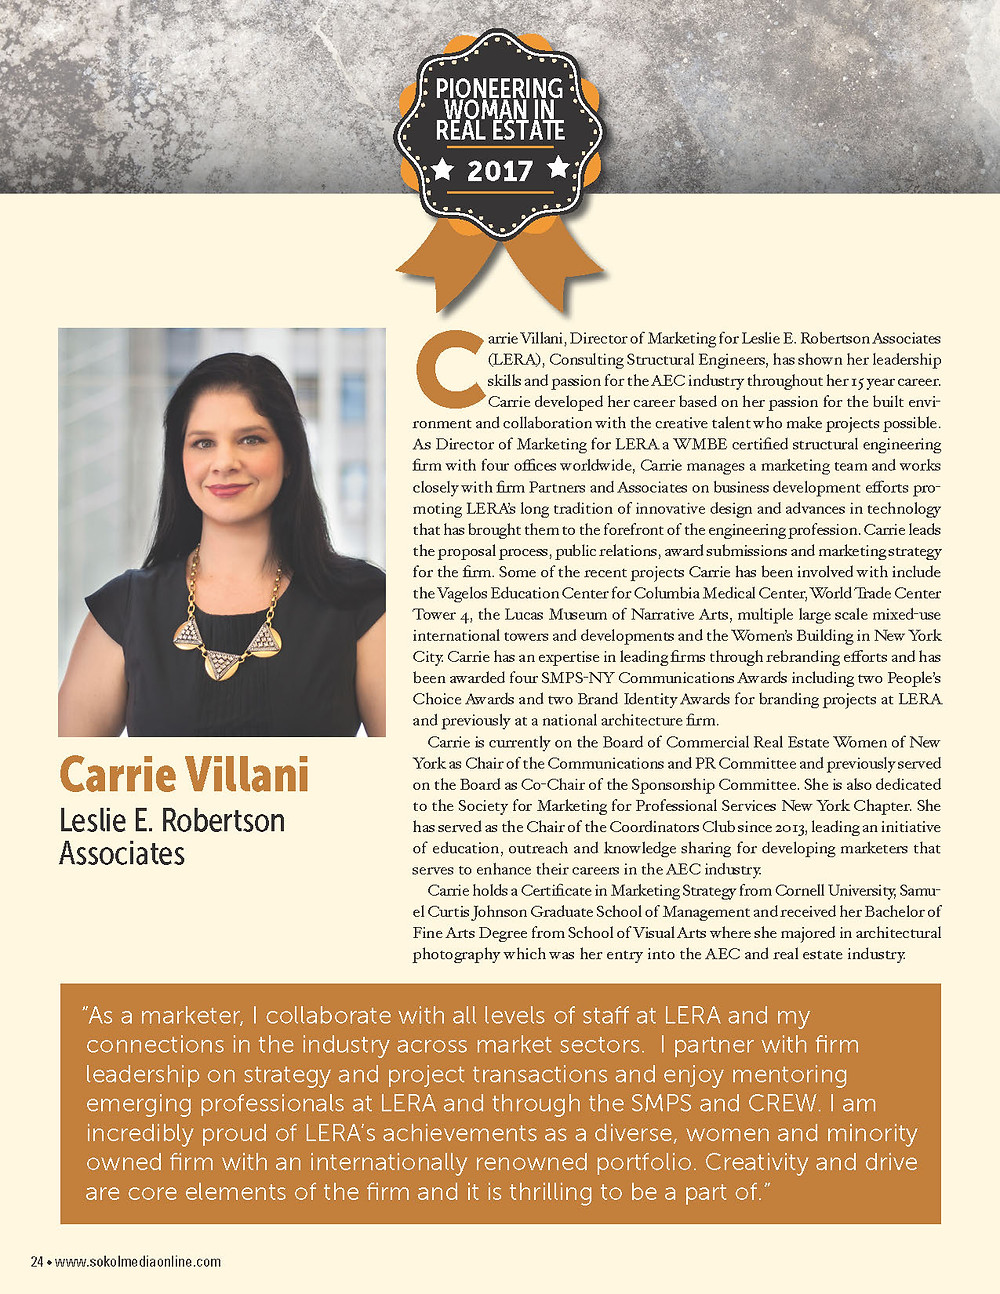 Sokol Media has honored Carrie Villani, Director of Marketing at Leslie E. Robertson Associate as a Pioneering Women in Real Estate during their 16th annual awards gala held on March 8, 2017 at Club 101. The Pioneering Women in Real Estate program acknowledges individuals and firms who support and exemplify progress for women in our industry. Carrie was one of twelve women who work in the real estate or AEC field honored at the awards gala. Carrie was honored for her     Carrie serves on the Board of Commercial Real Estate Women of New York (CREW NY) as Communications and PR Chair. Read Carrie's award bio here.